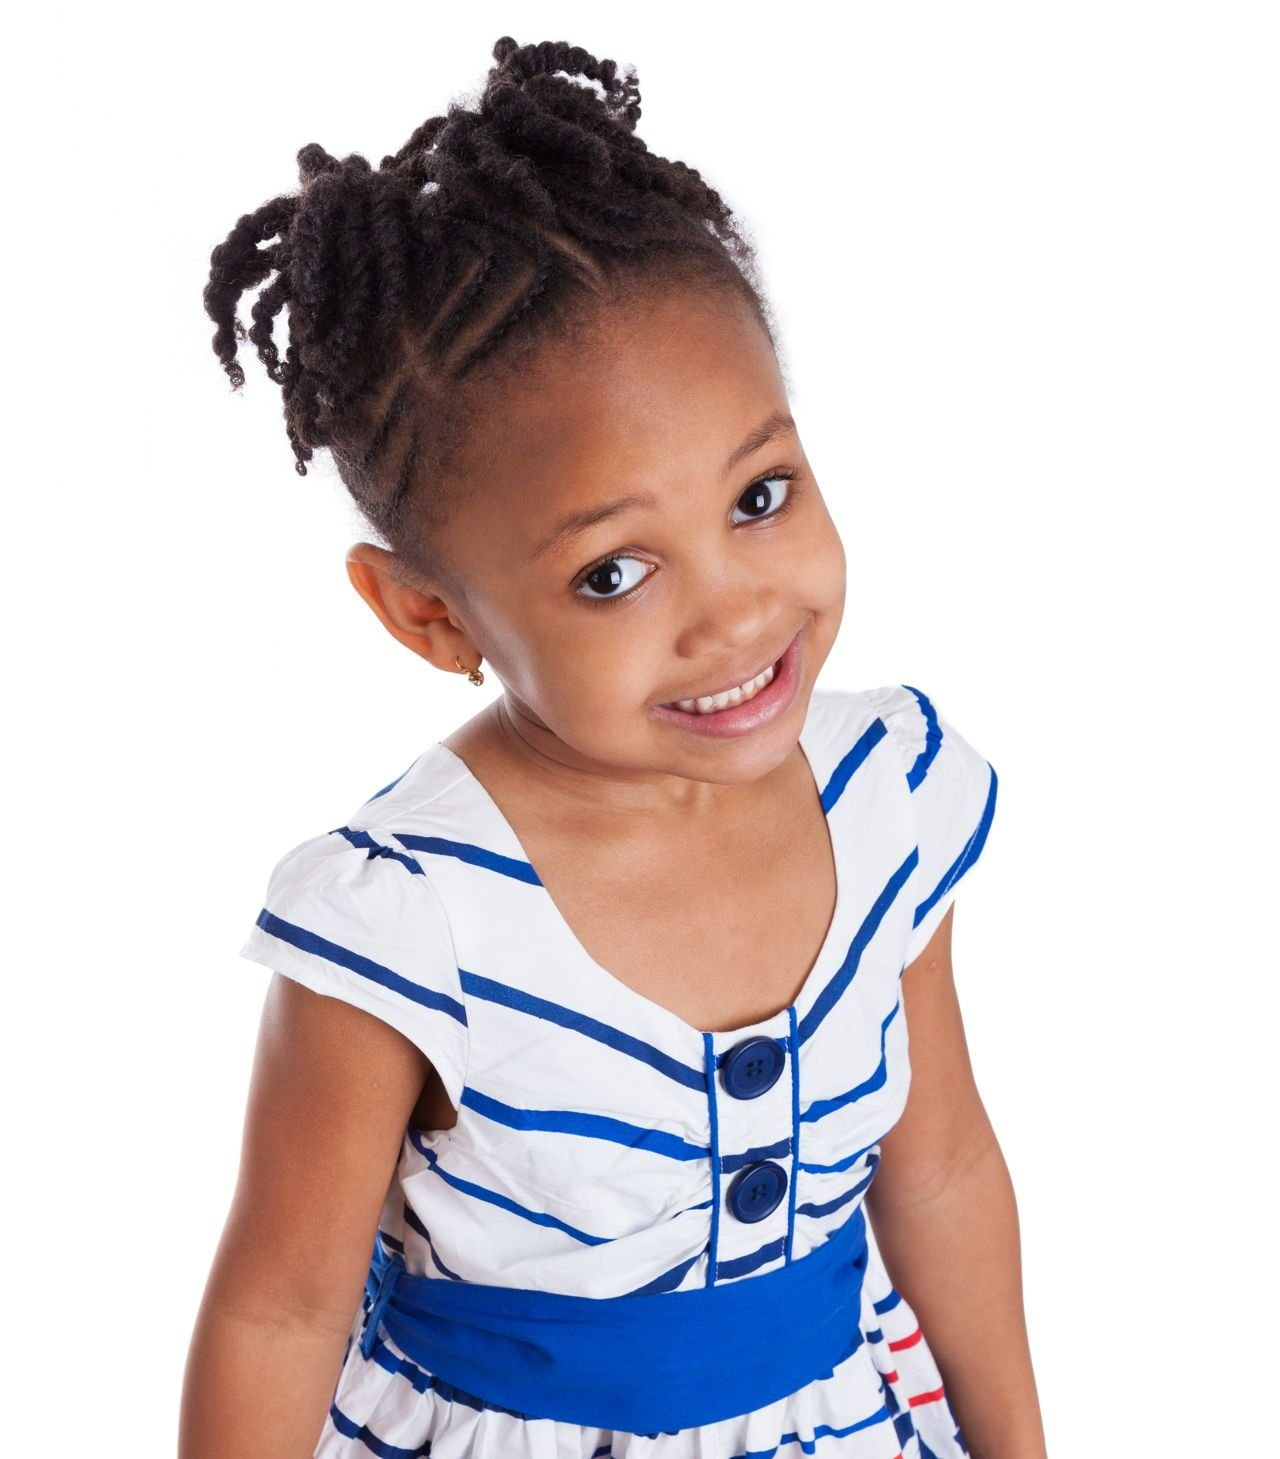 New Cute African American Braided Hairstyles For Kids Ideas With Pictures